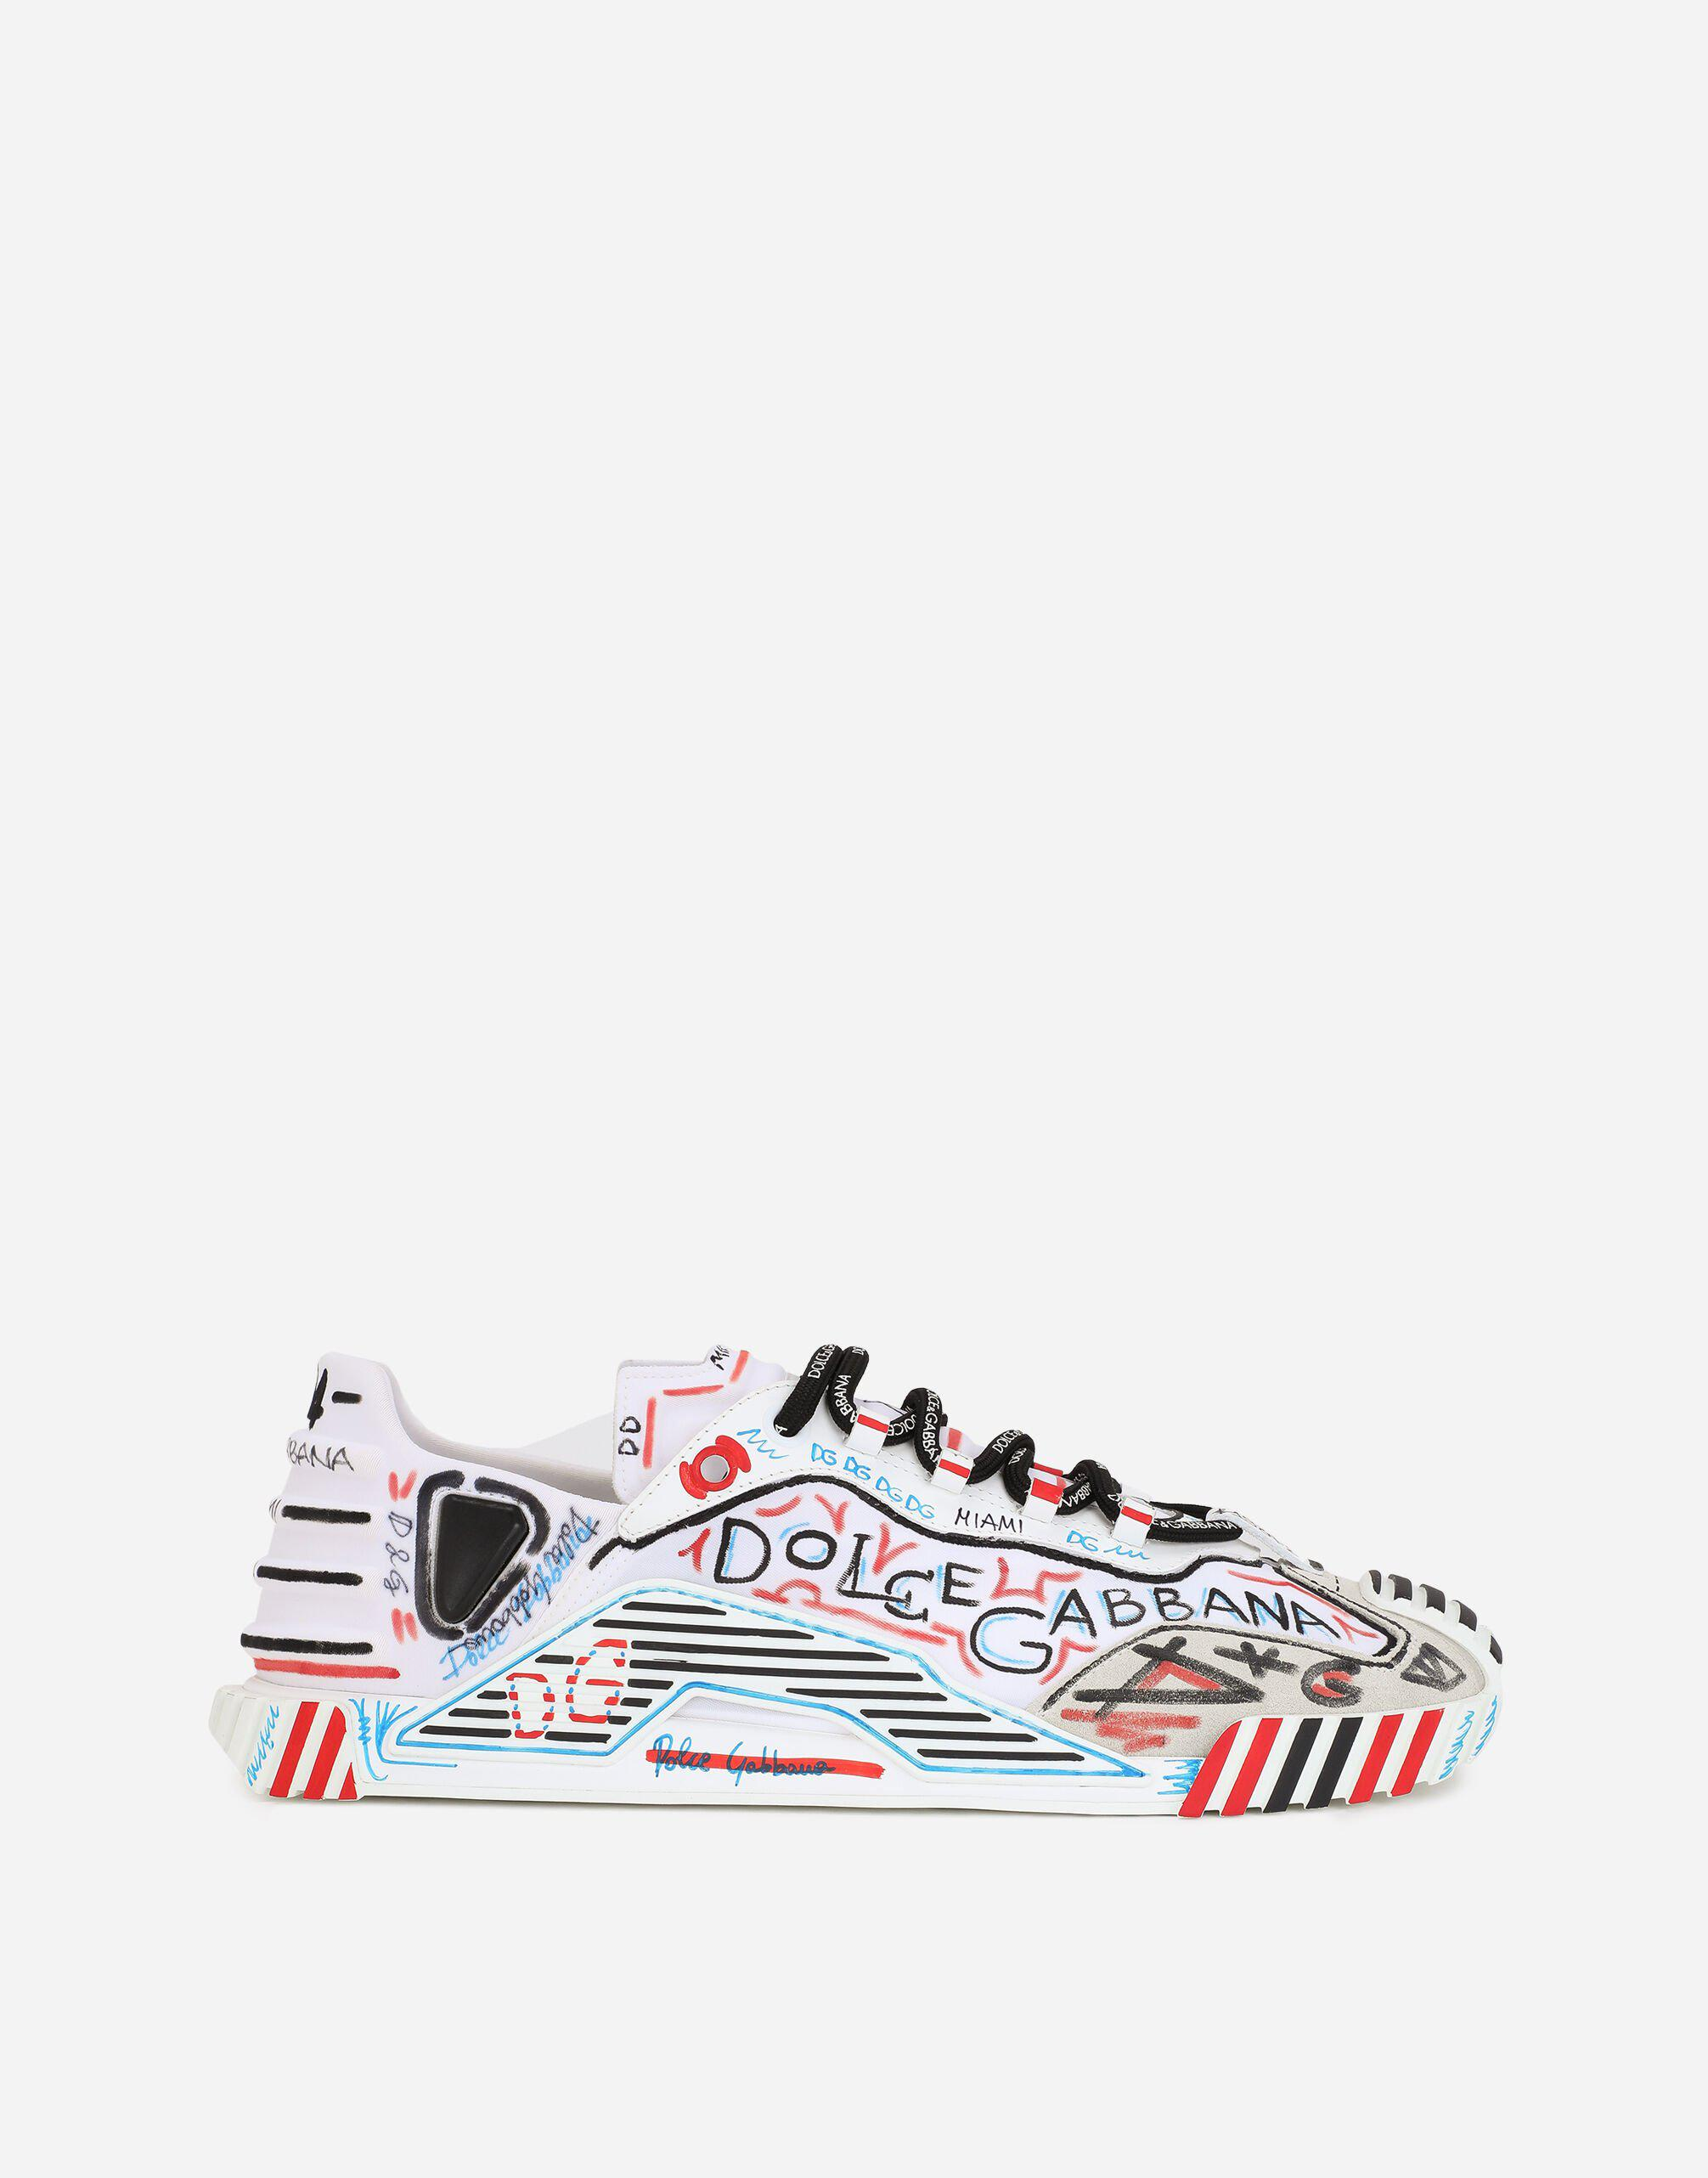 Mixed-materials Miami NS1 slip-on sneakers